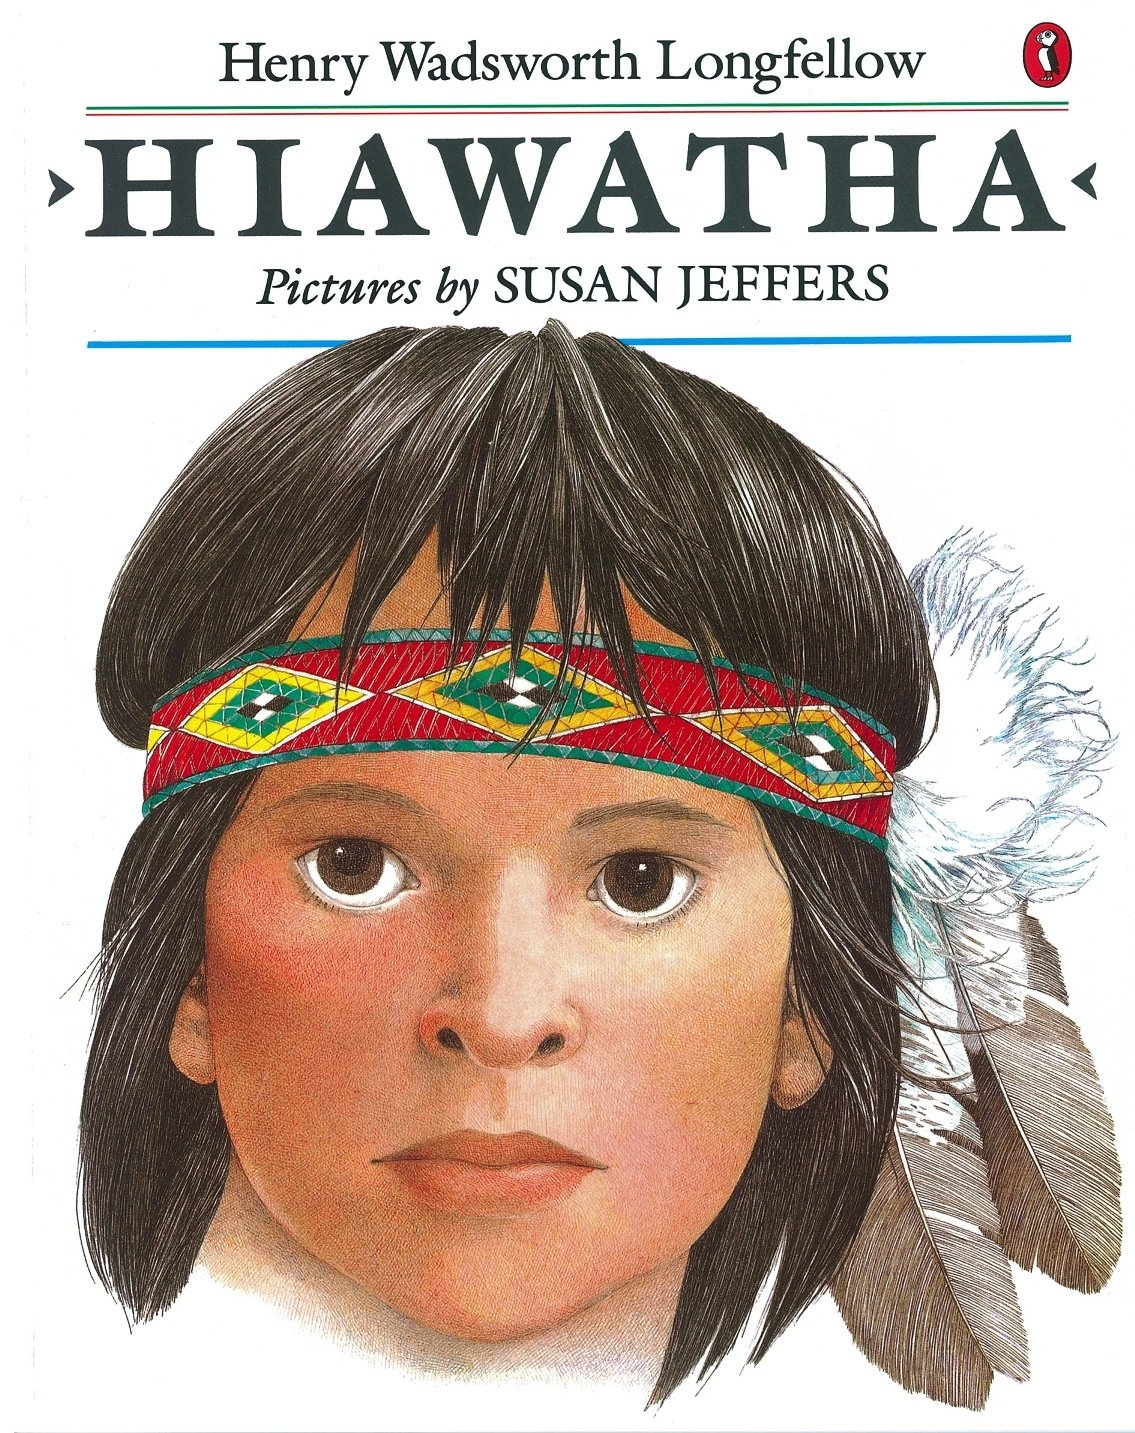 hiawatha poet song of hiawatha by henry wadsworth longfellow the  hiawatha picture puffin amazon co uk henry longfellow susan hiawatha picture puffin amazon co uk henry